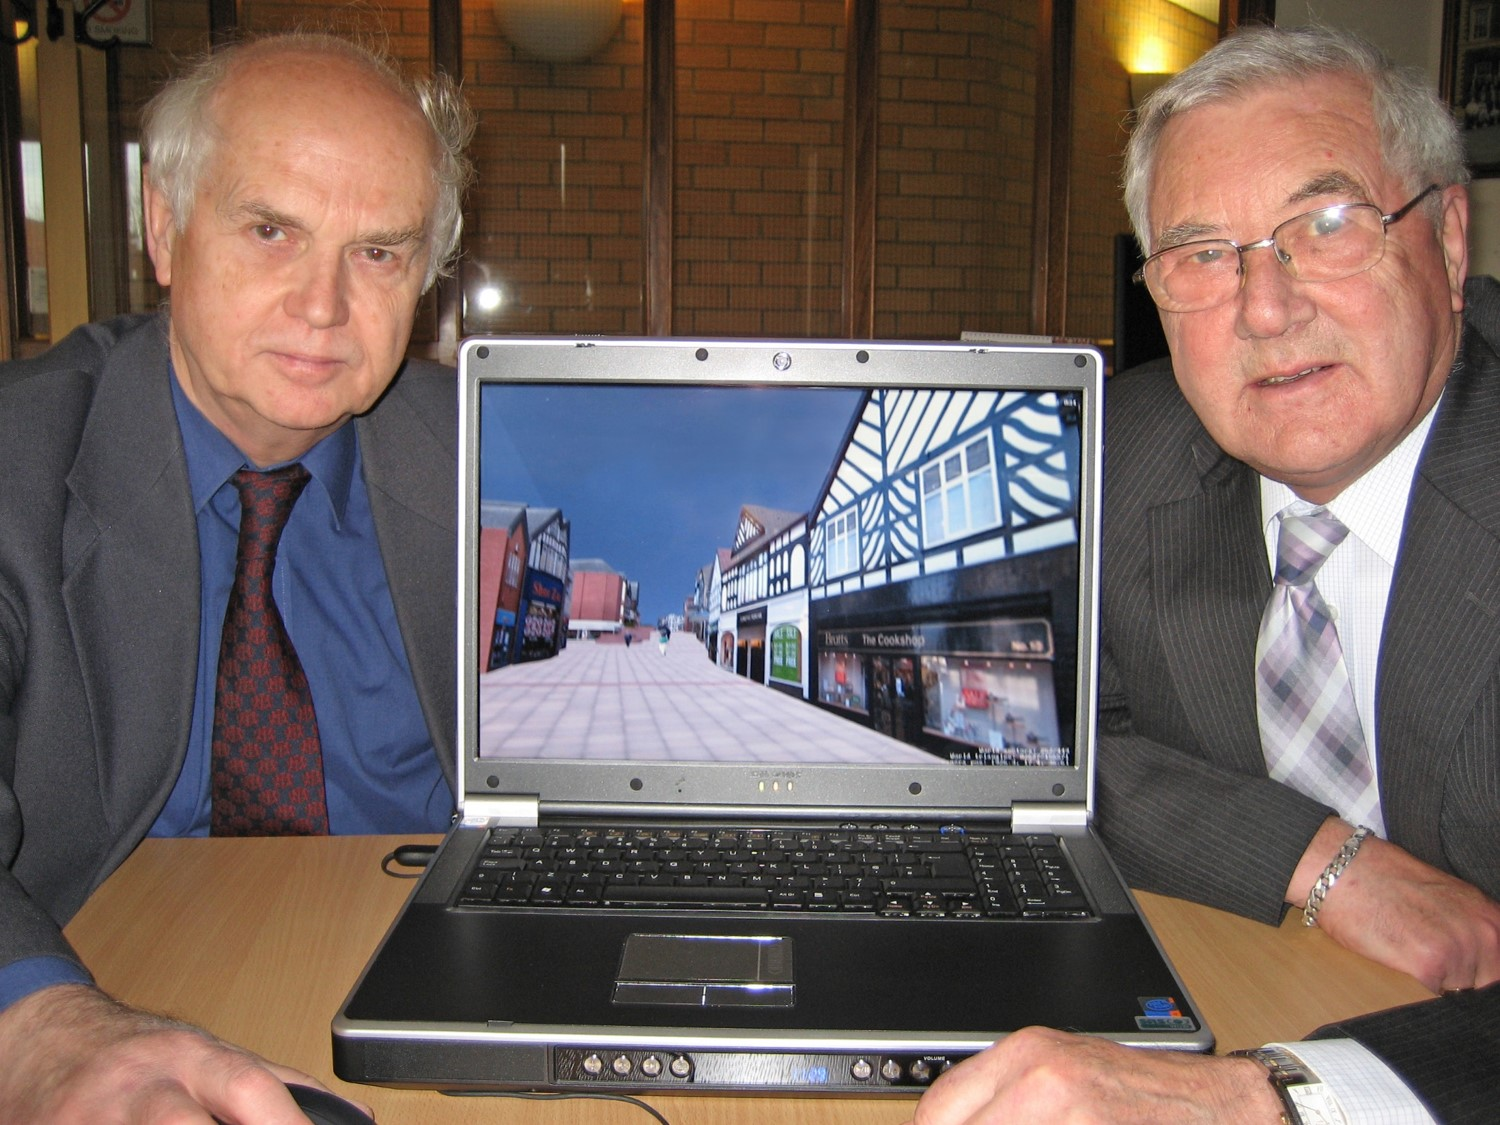 Northwich councilors in 2006 with their 3D laptop enabling them to walk around the virtual reality model of Norwich which was being used as part of their planning review process.